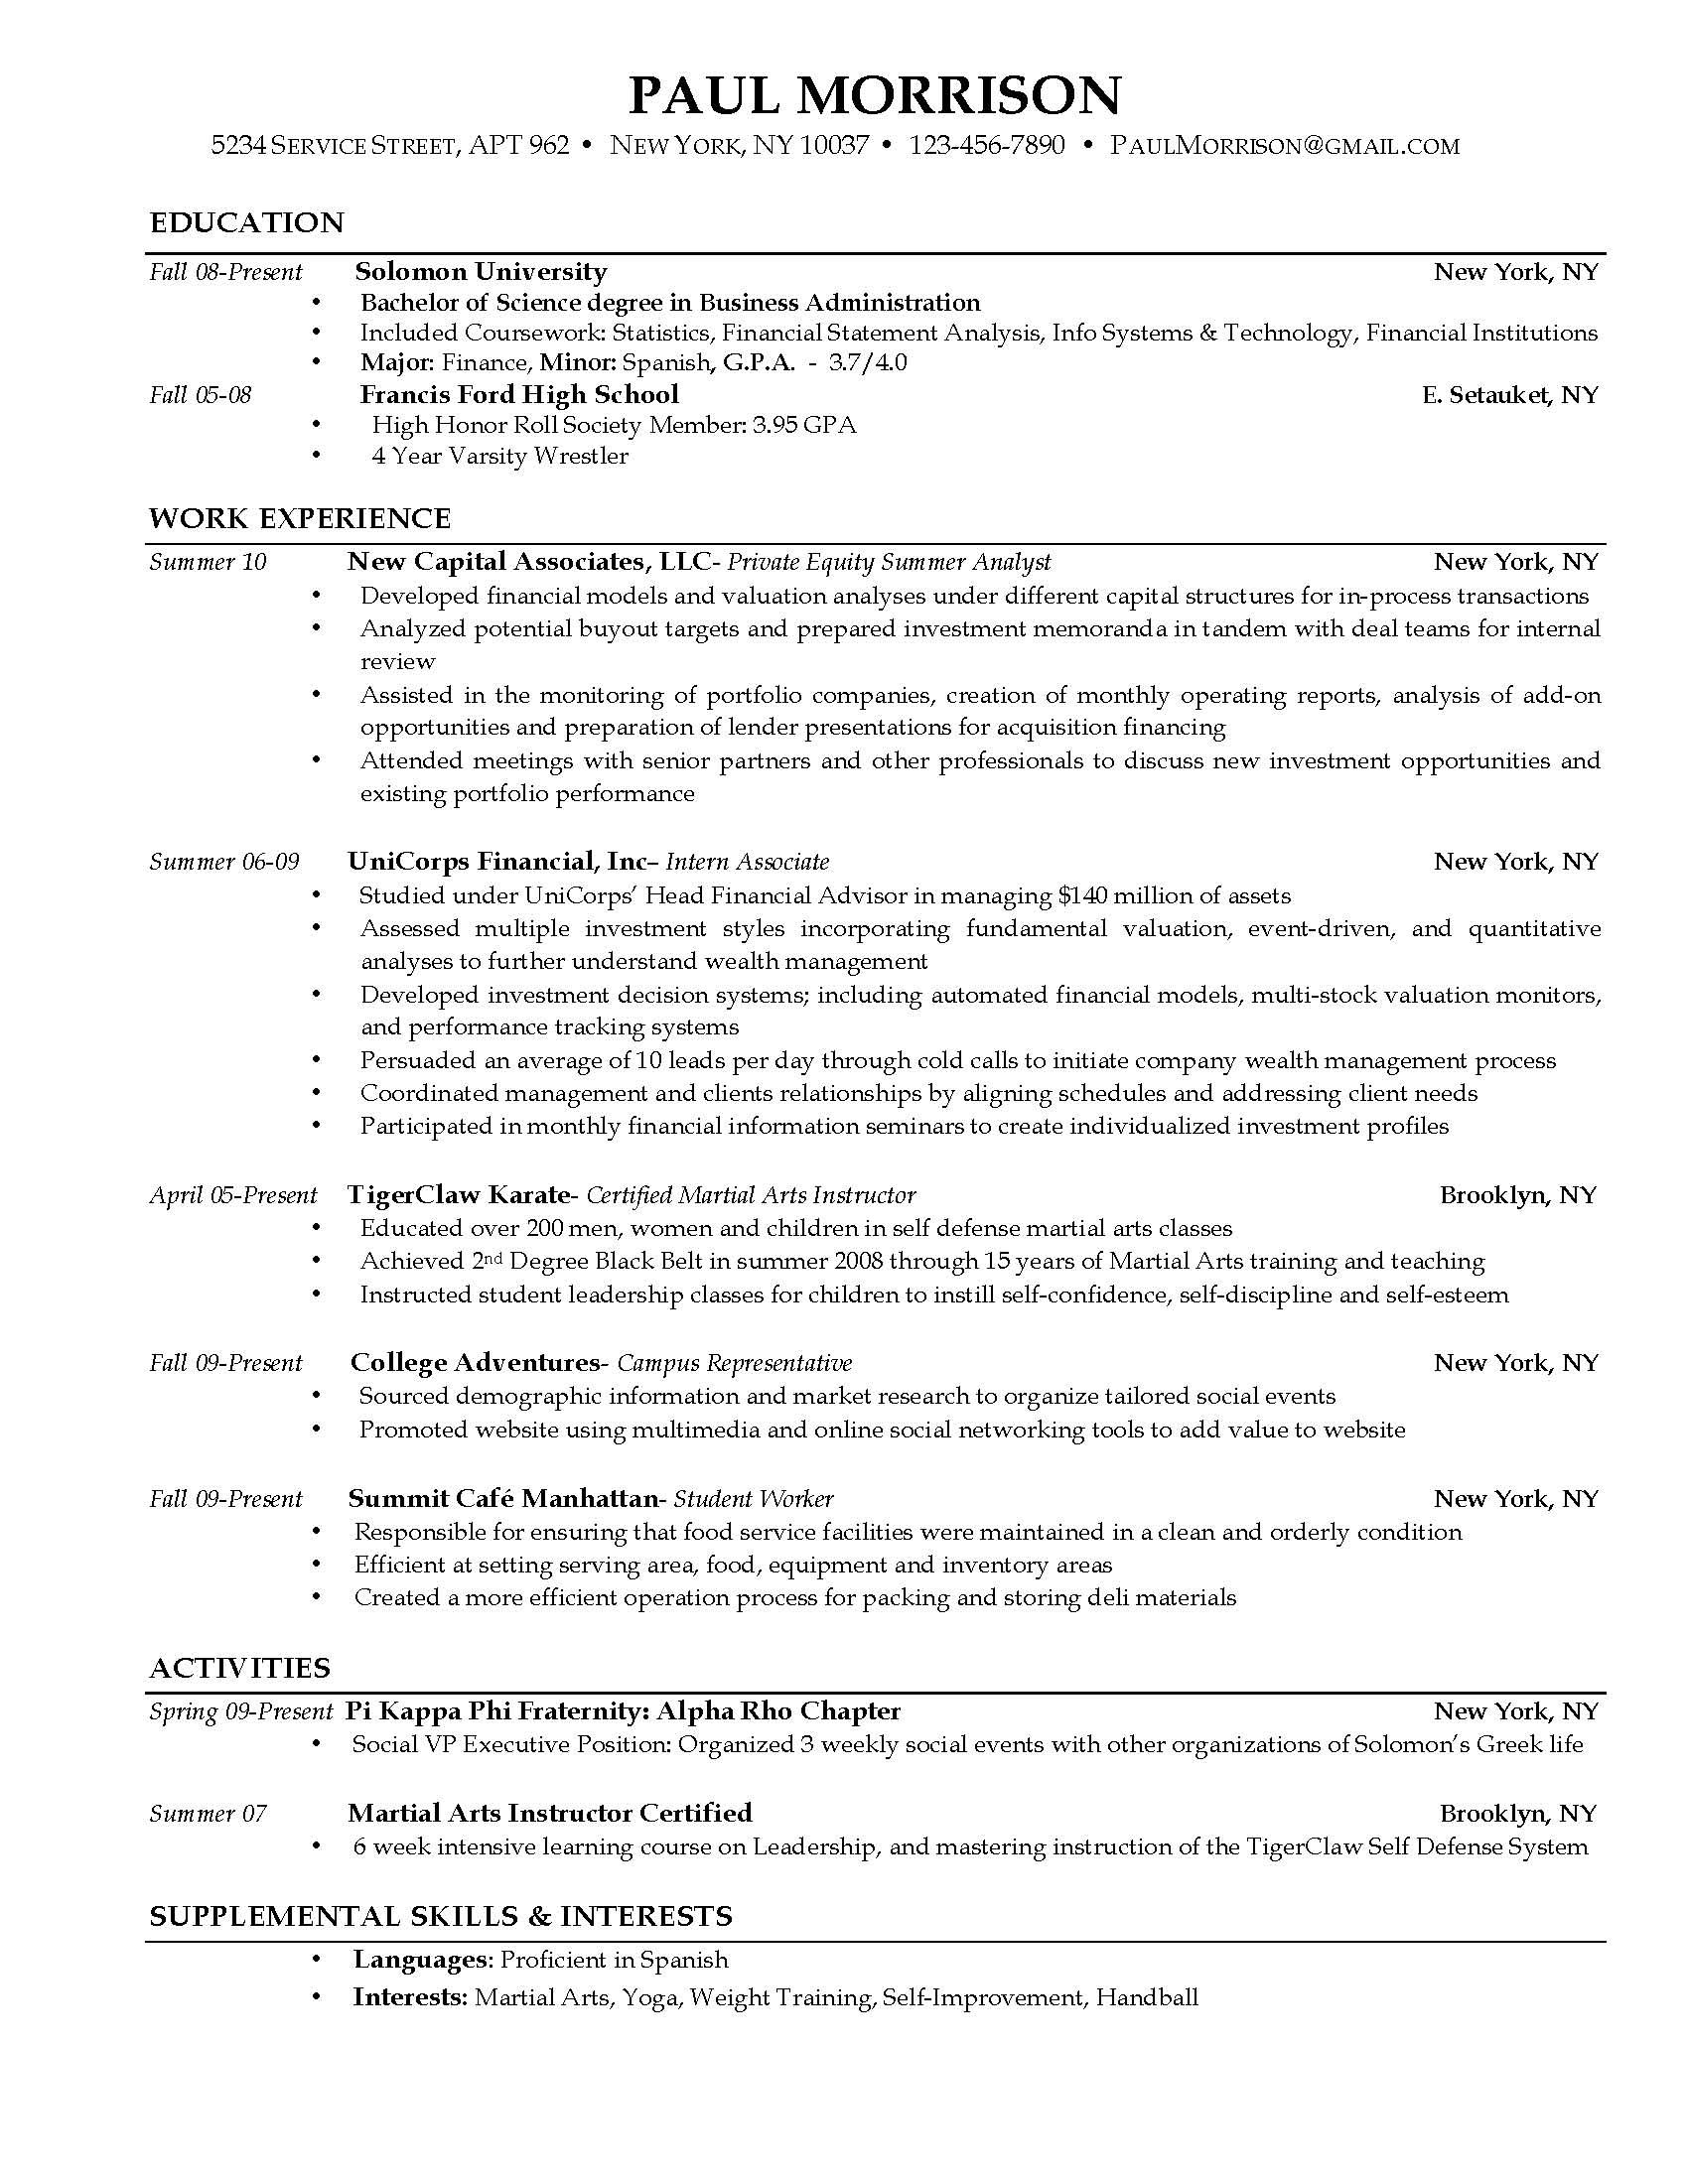 Current College Student Resume Templates